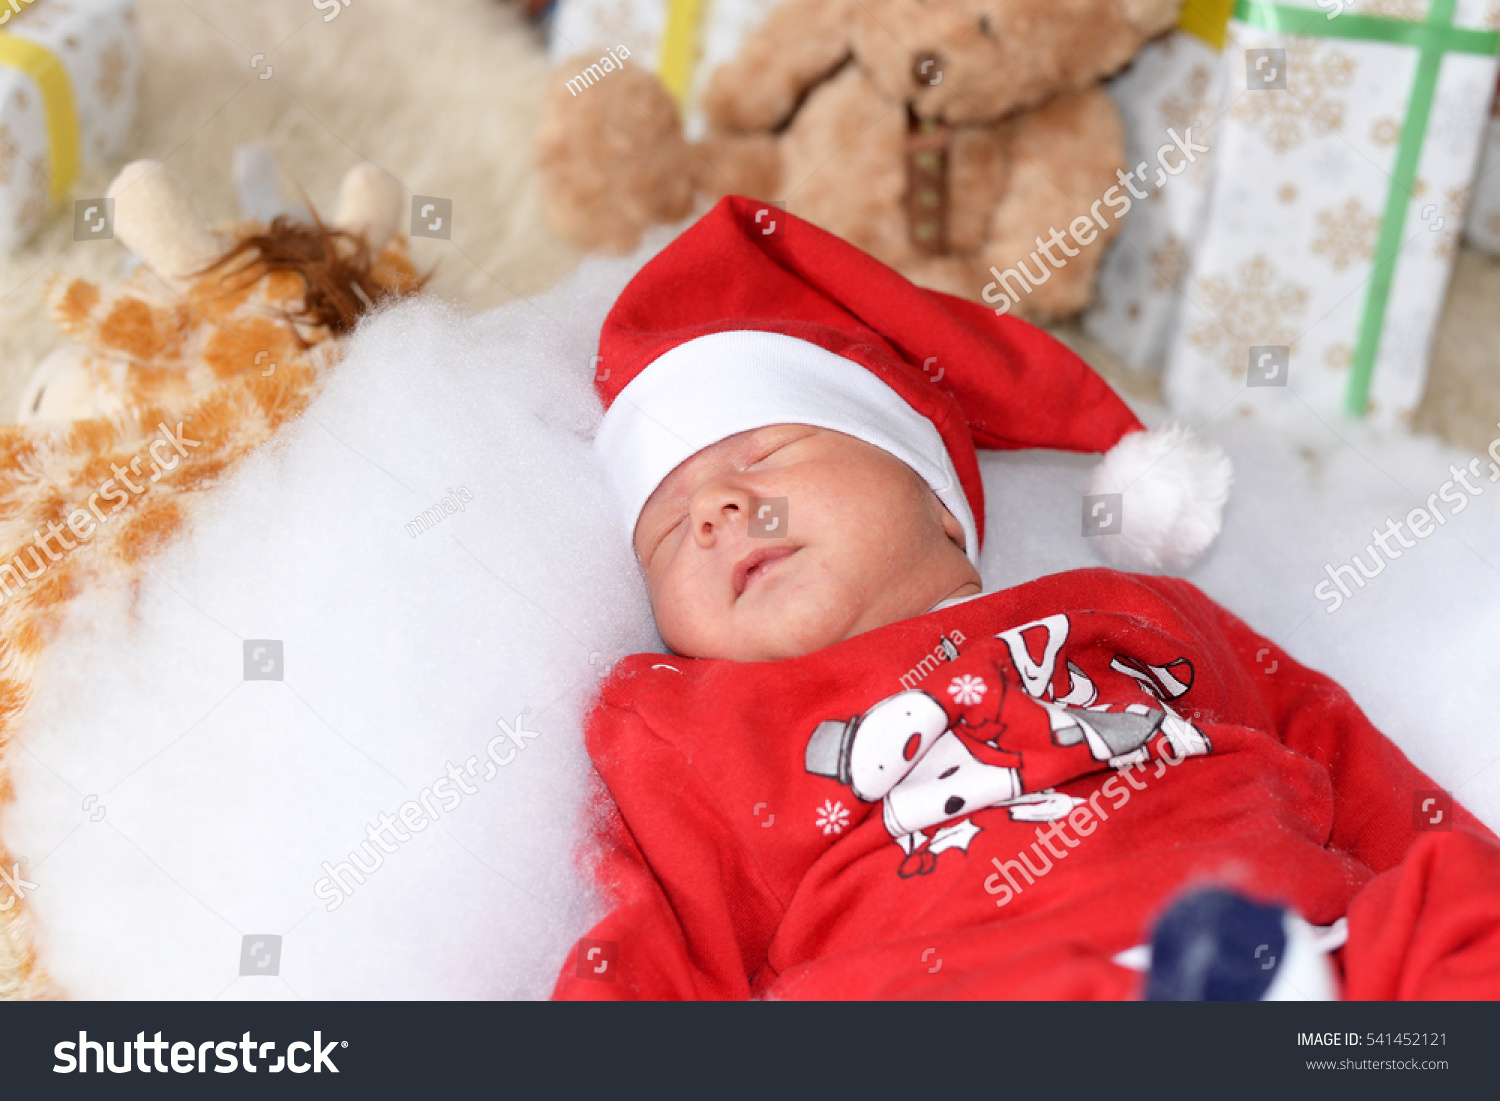 Newborn boy gifts christmas